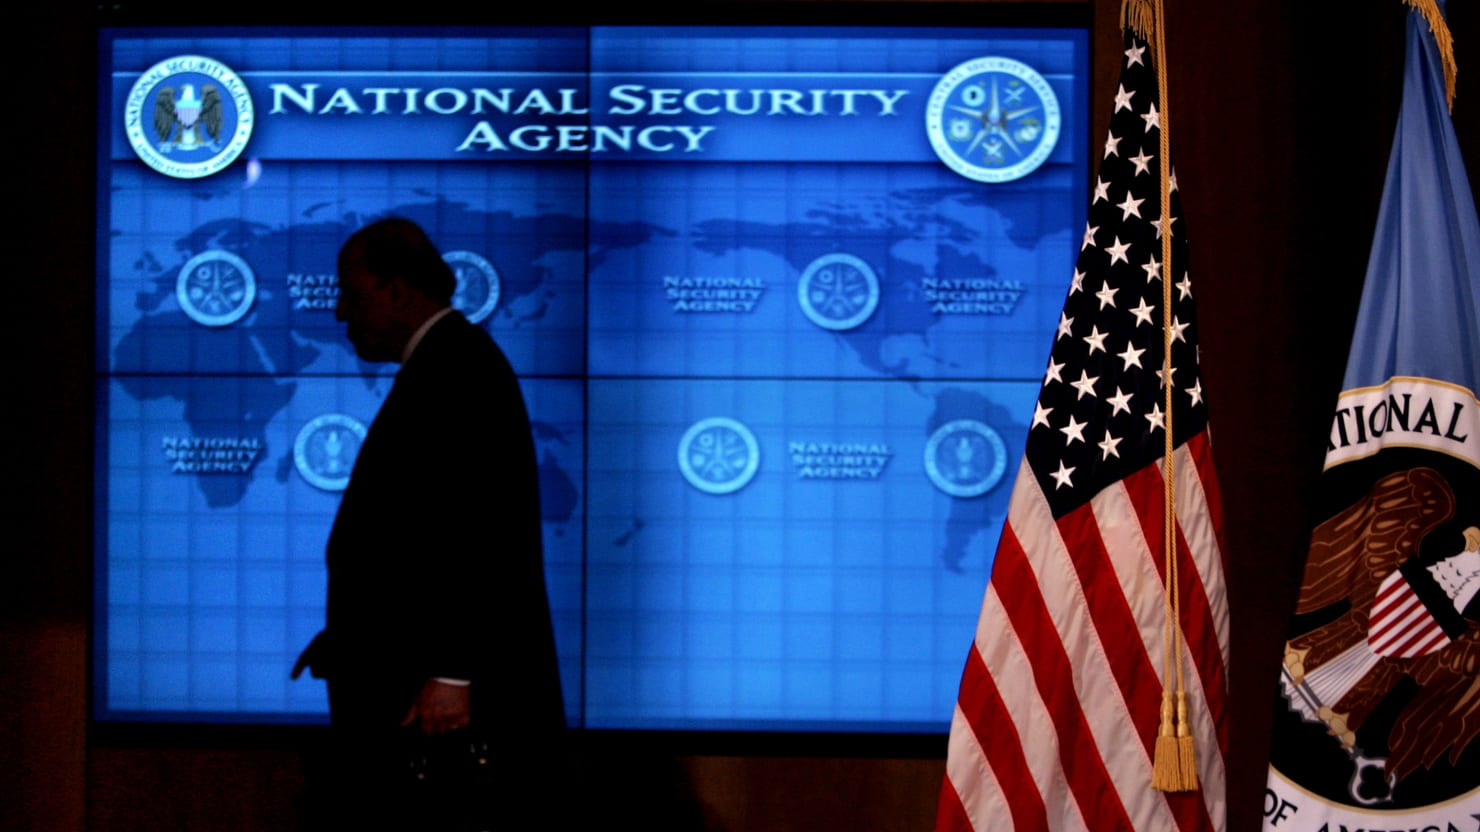 New Bill Would Finally Stop NSA's Mass Collection of U.S. Phone Data